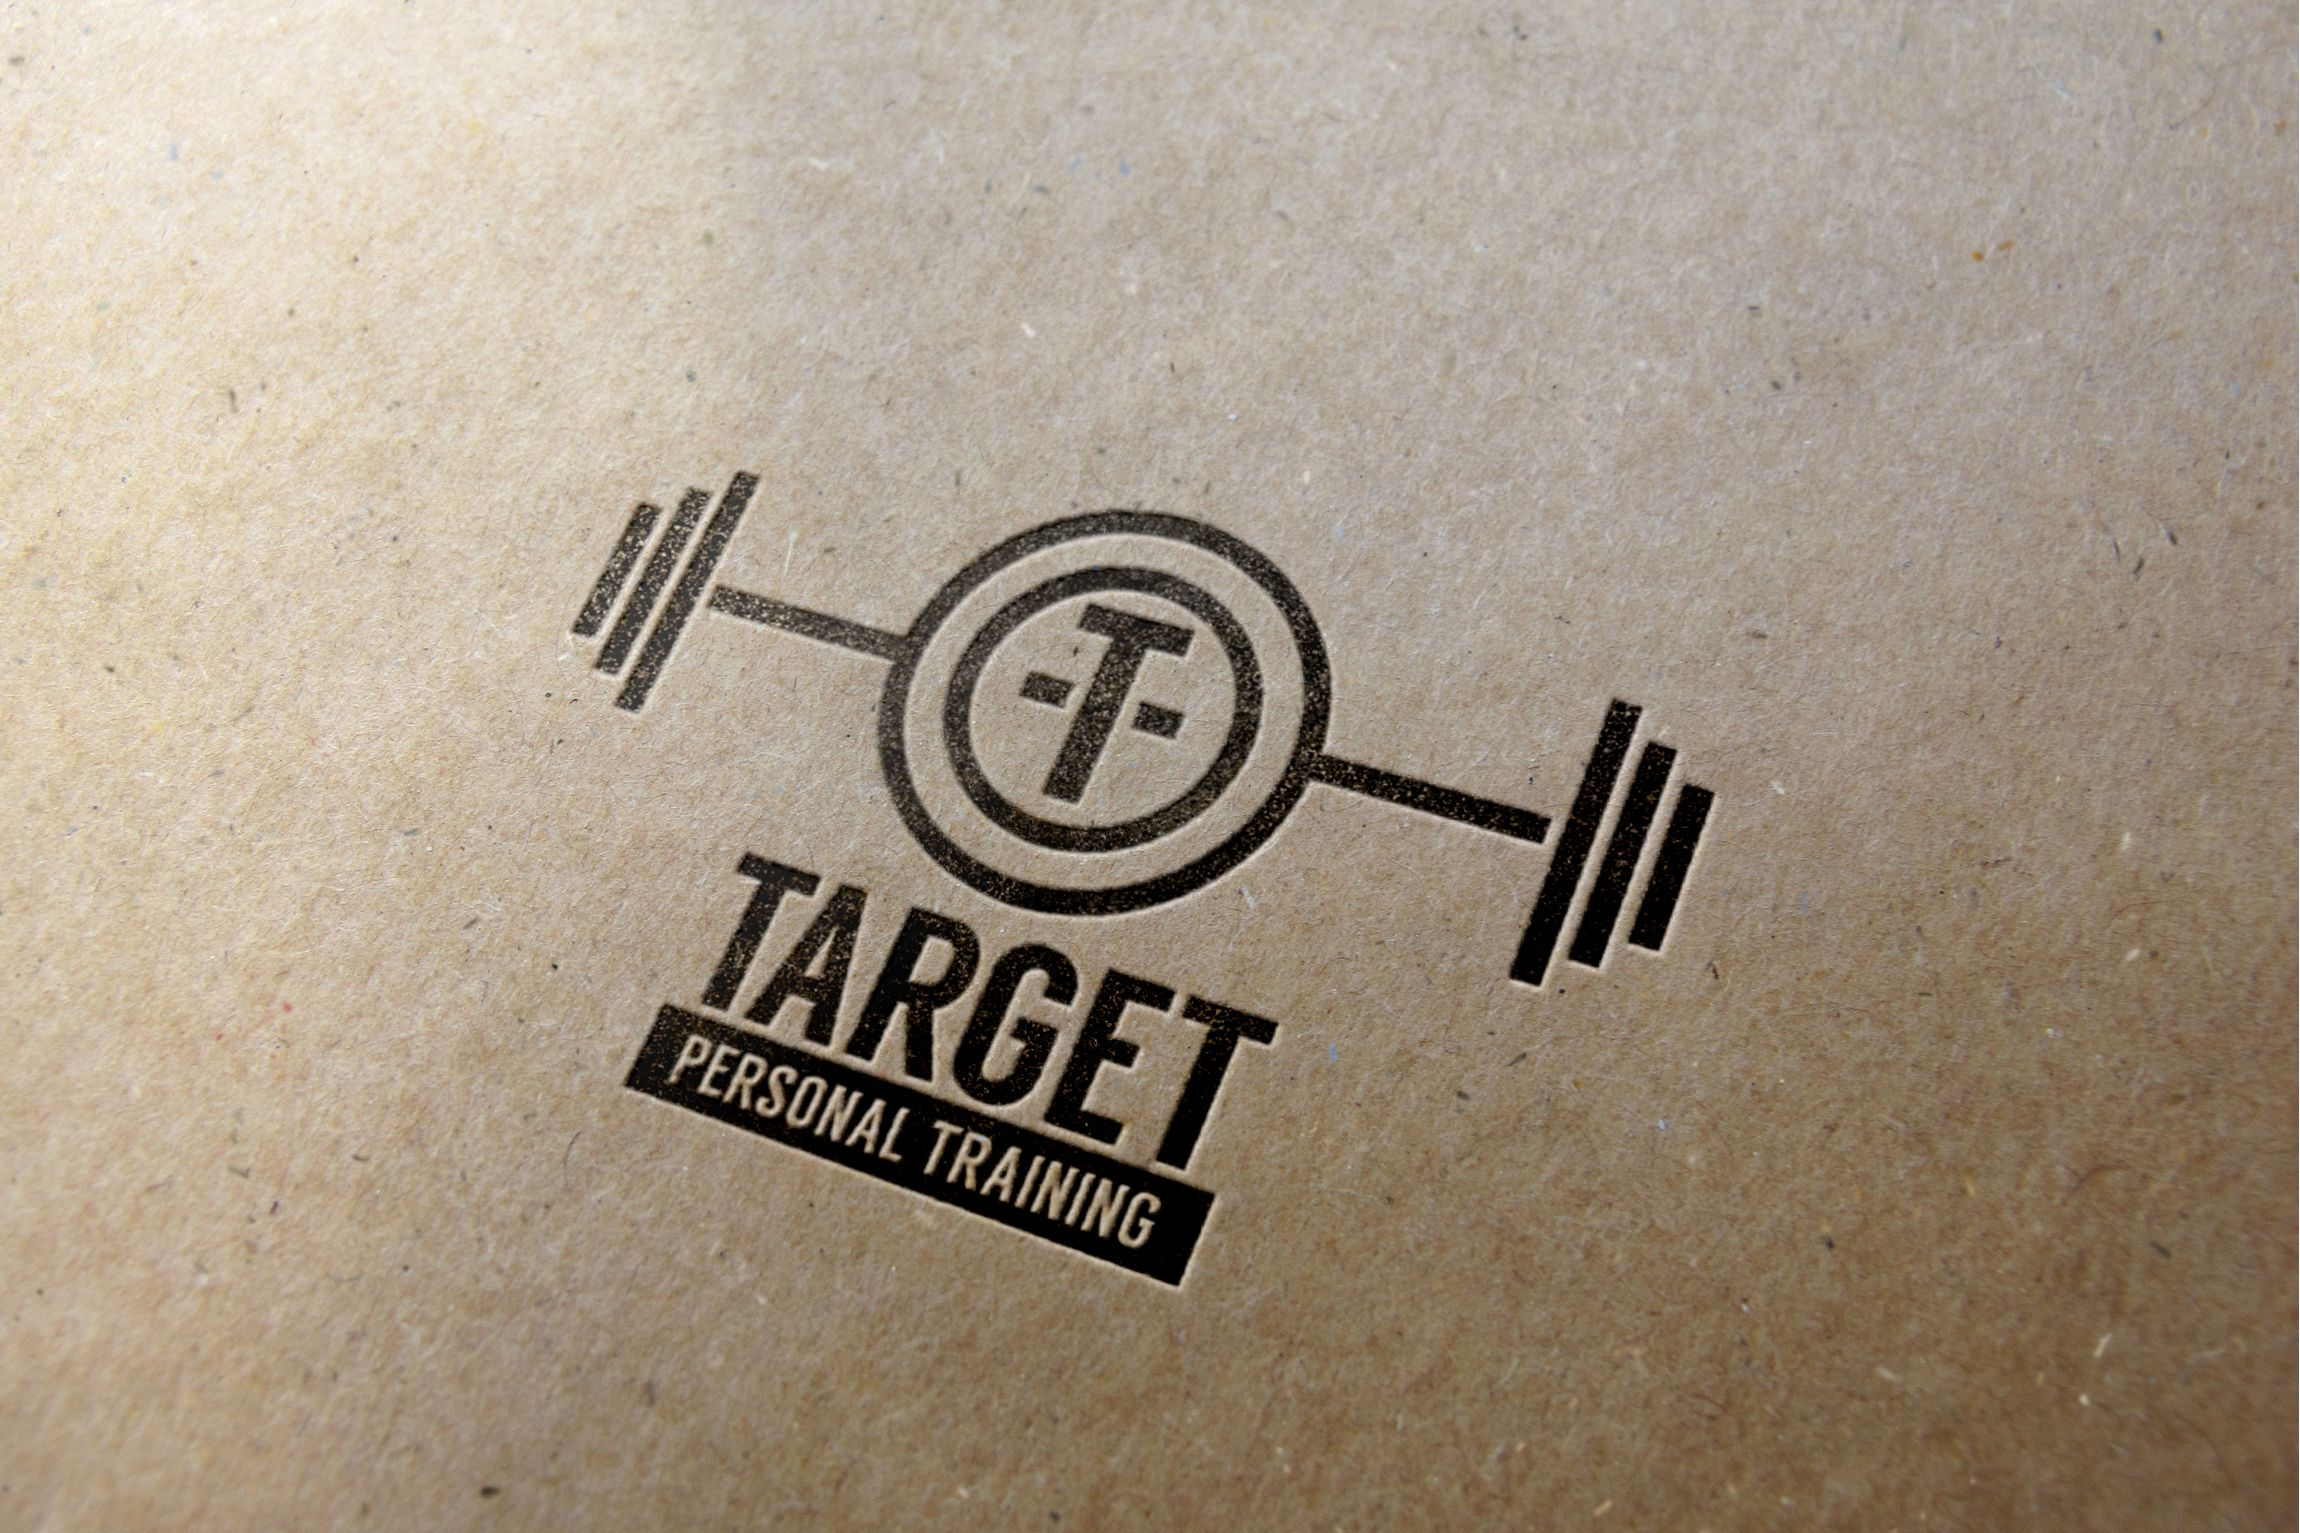 personal trainers logo Buscar con Google Fitness logo